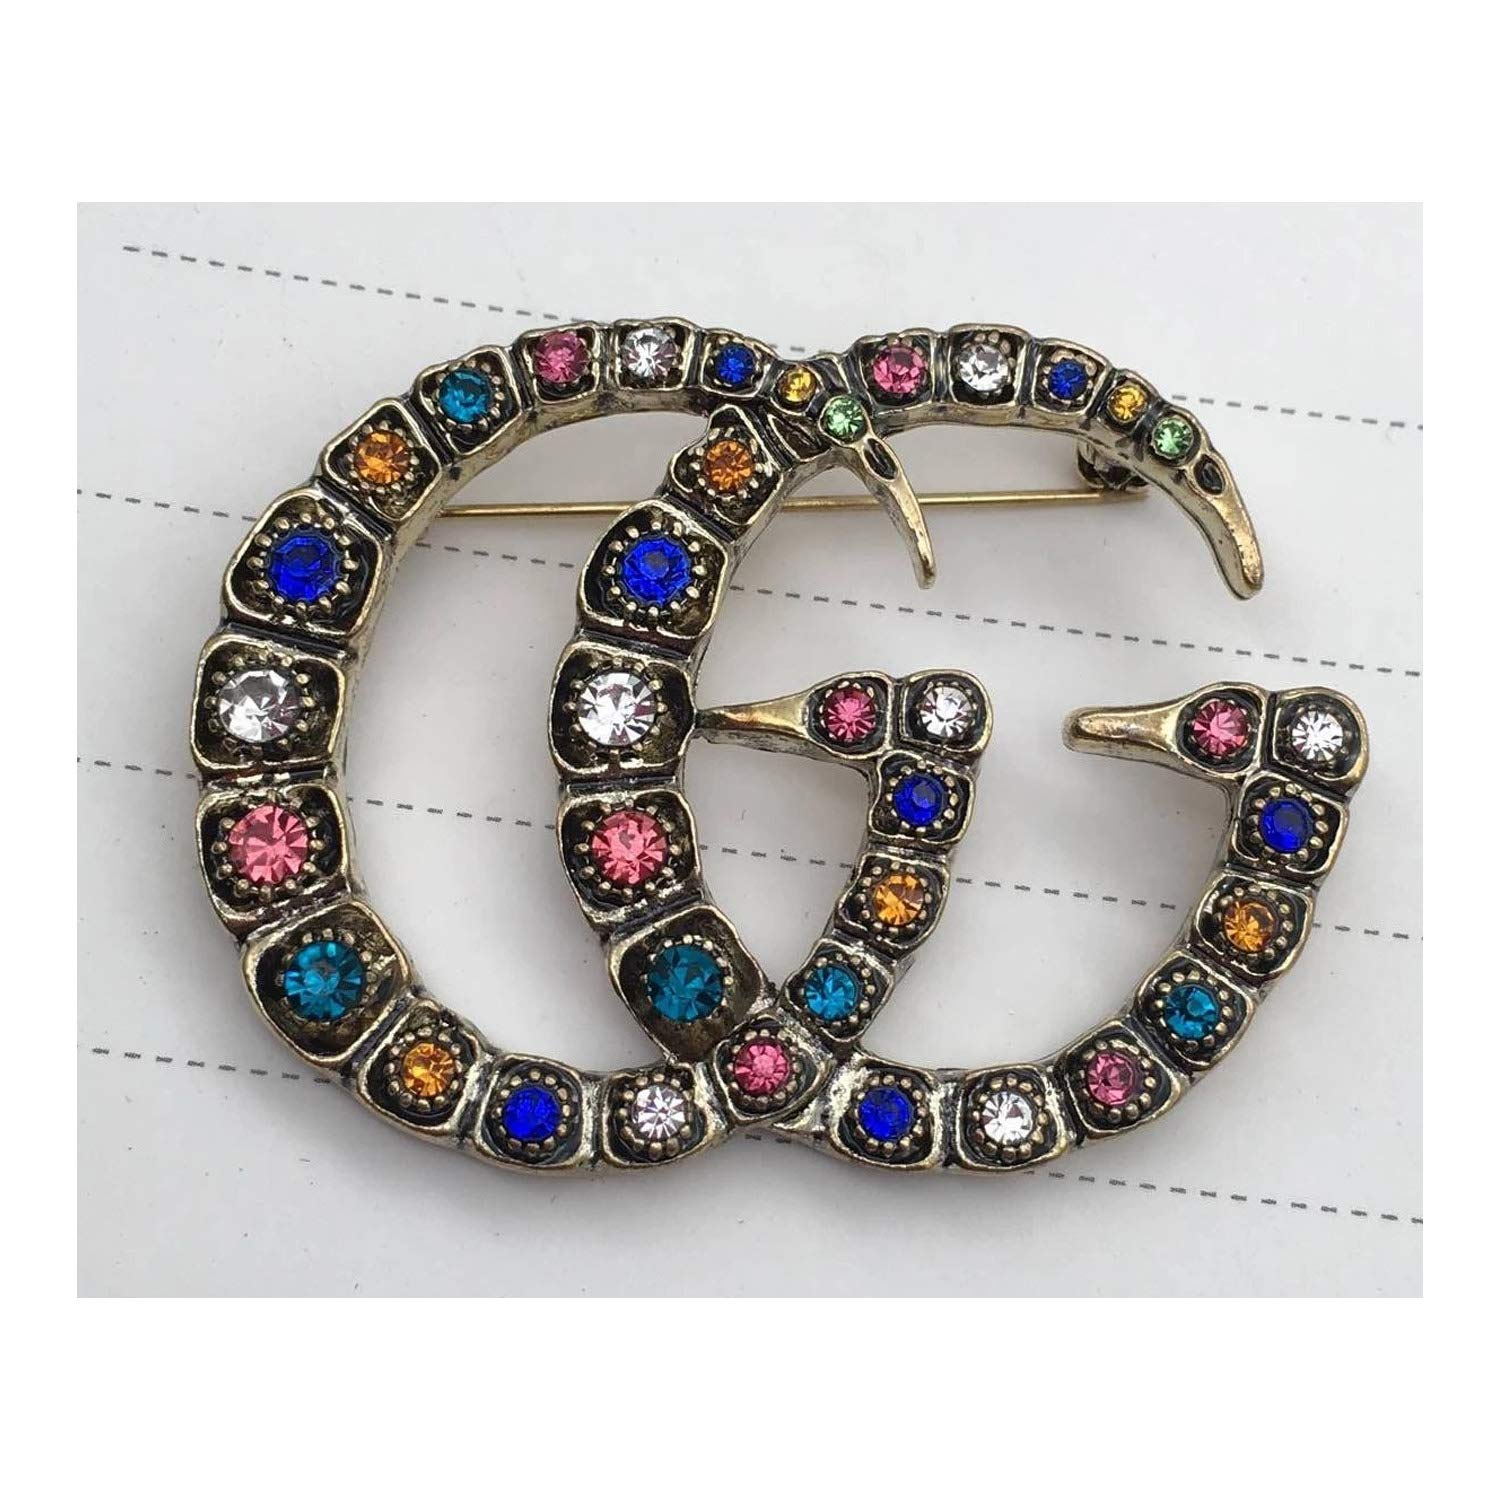 tianshiya Women's Fashion Brooches & Pin Letter Designed Metal and Crystal Paved with Multi-Options … (gg-Colorful)